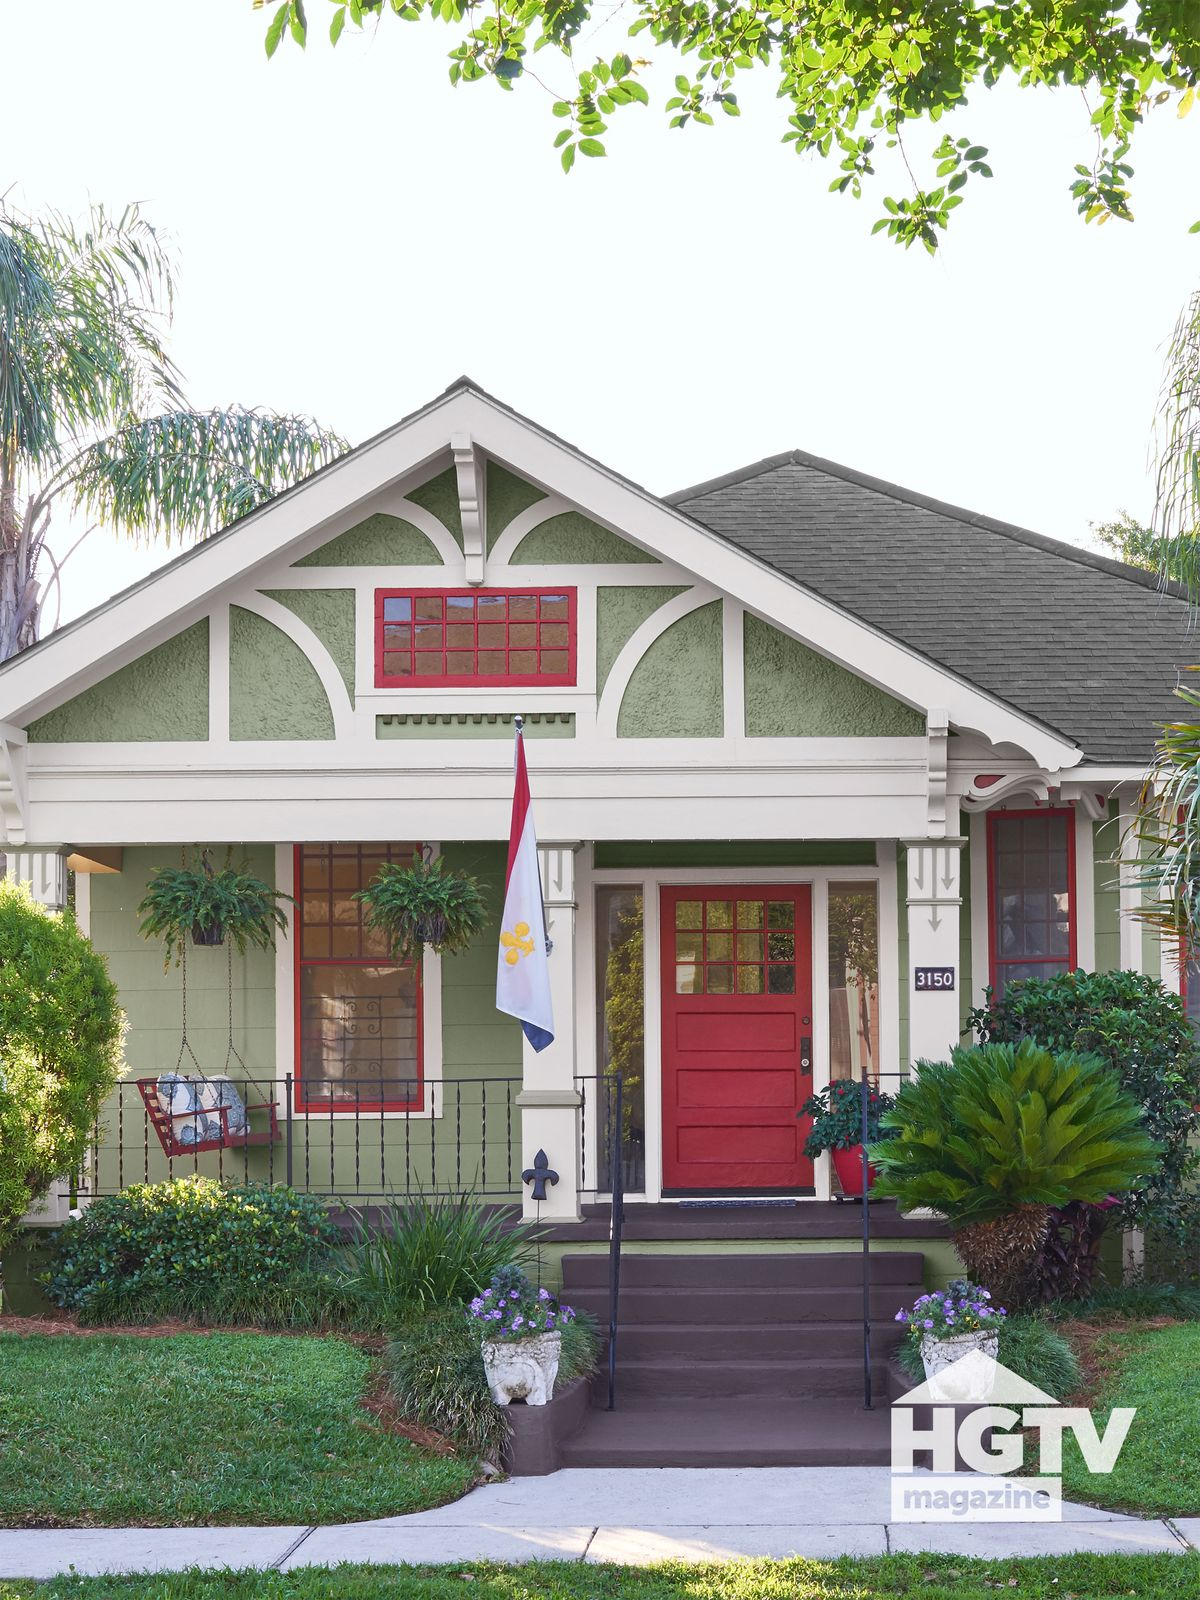 A green and red house featured in HGTV Magazine